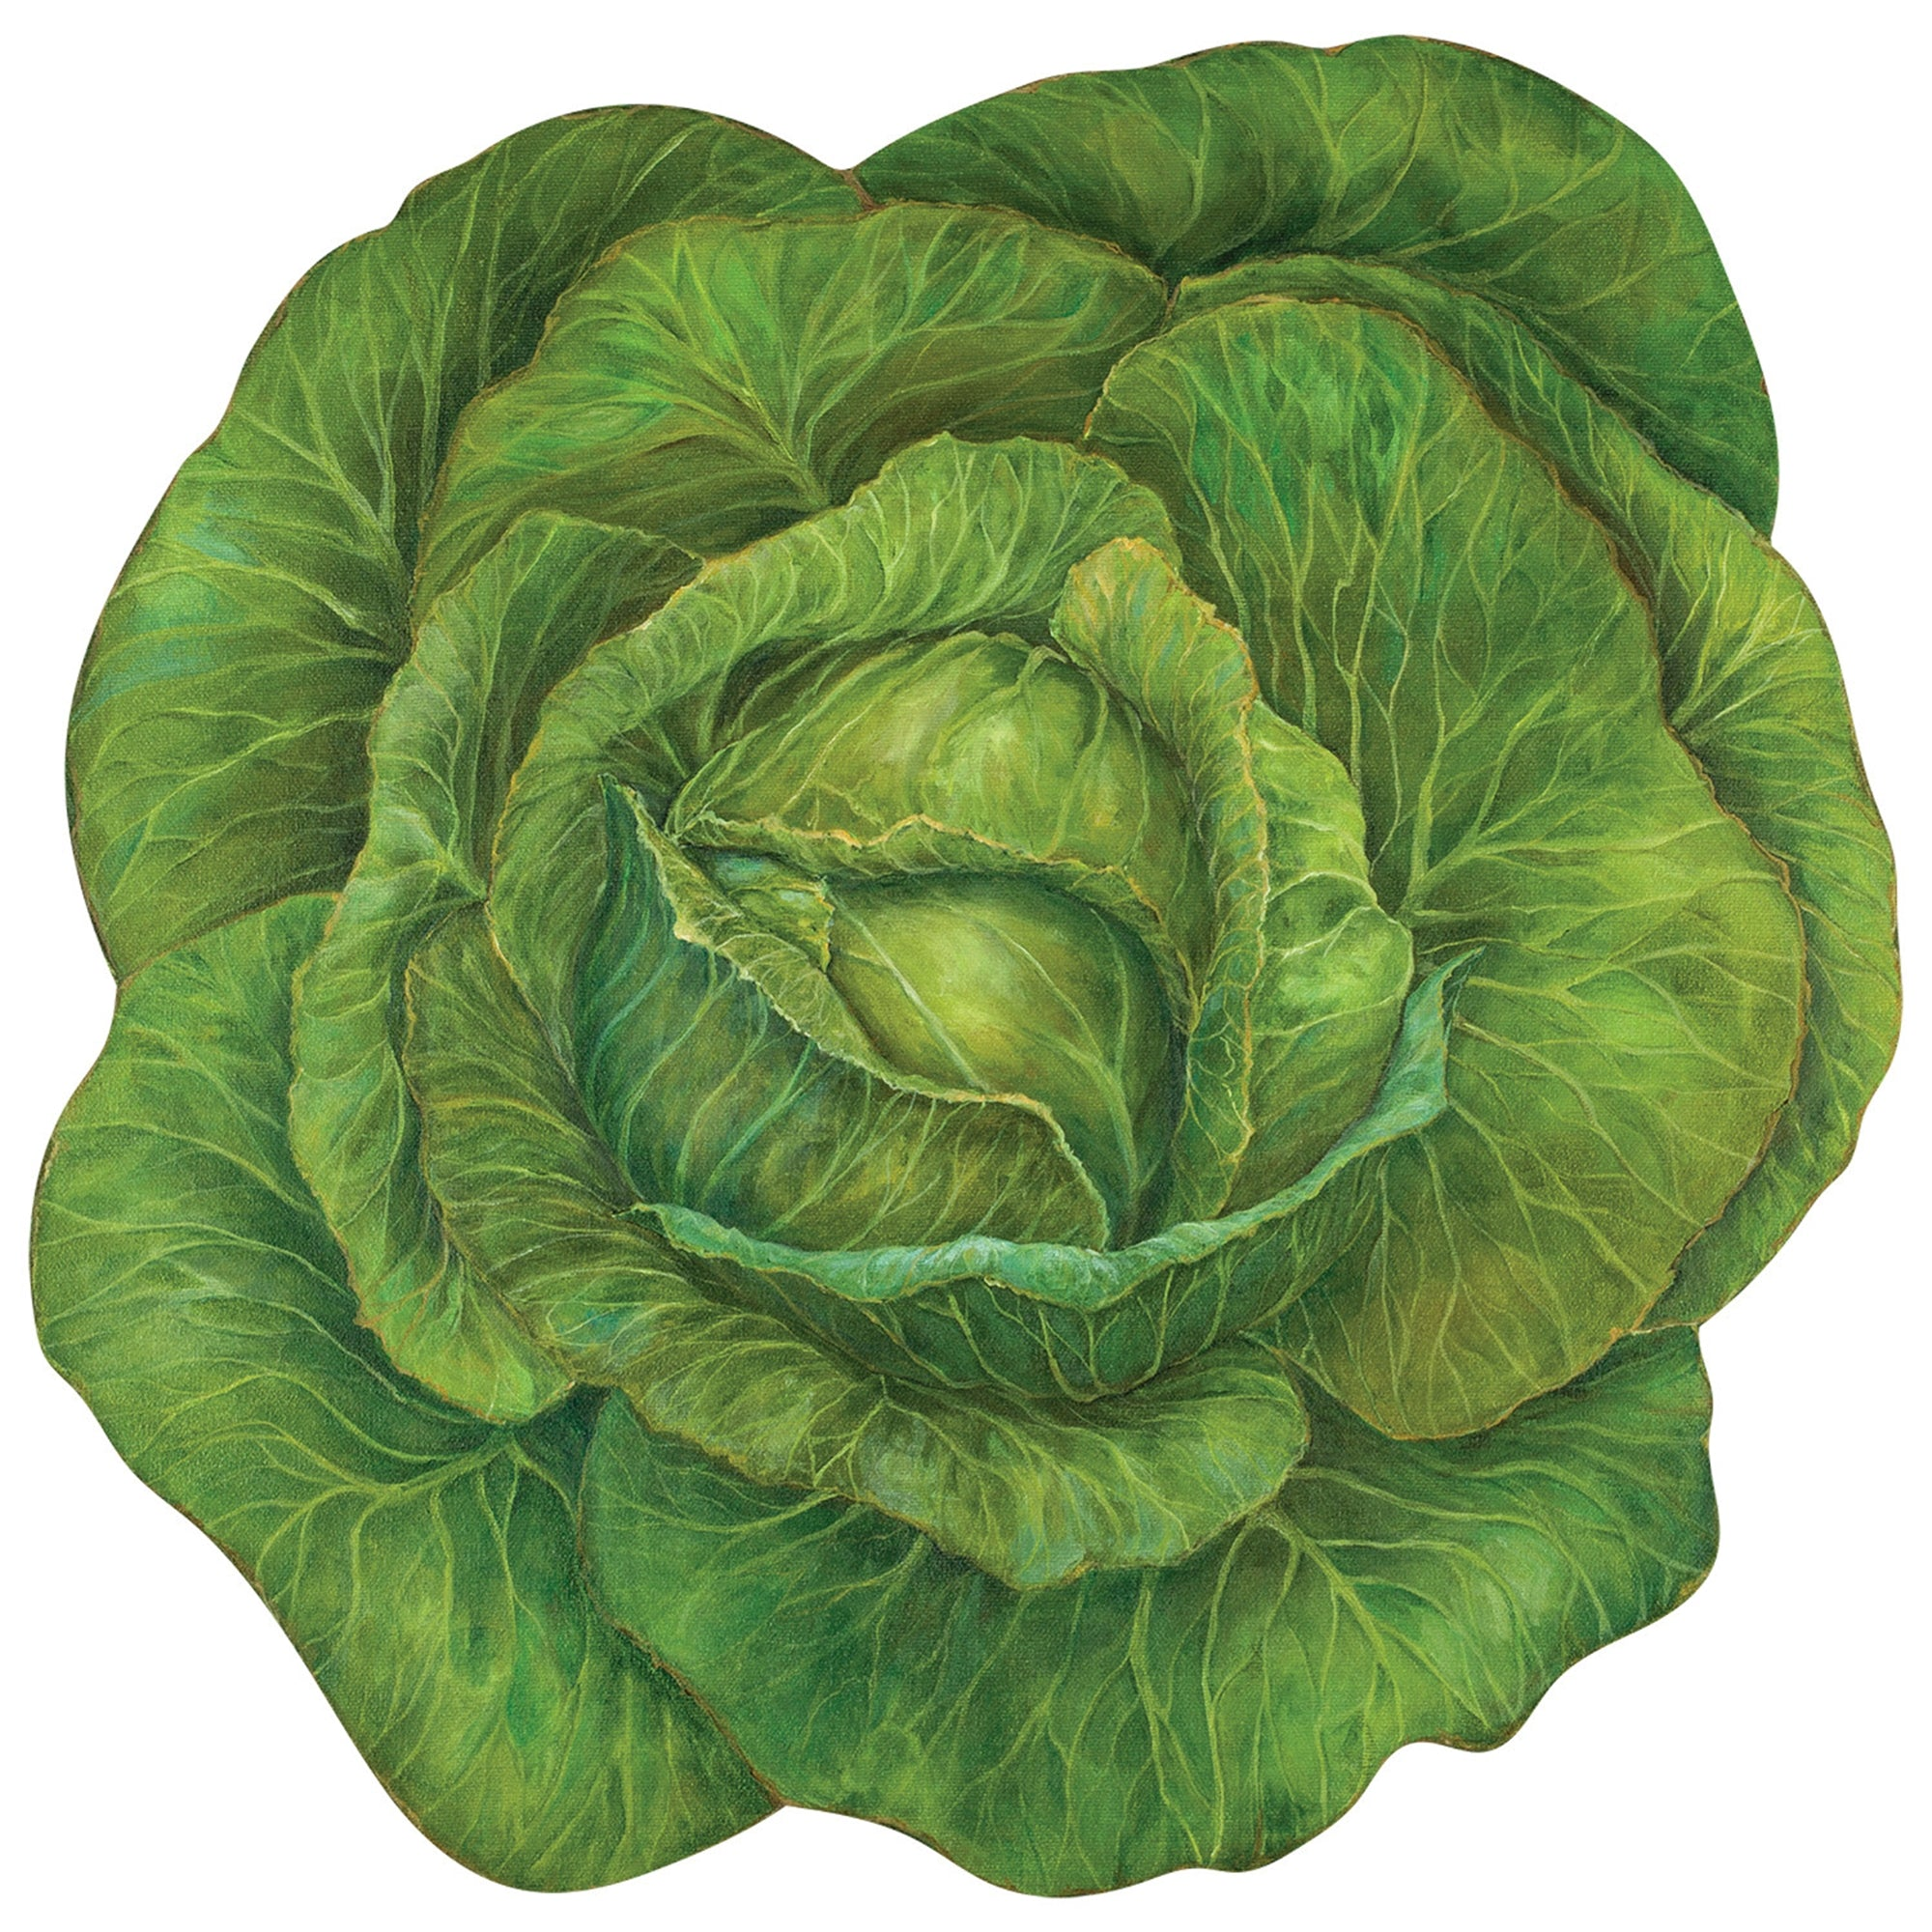 Hester & Cook Die Cut Cabbage Paper Placemats